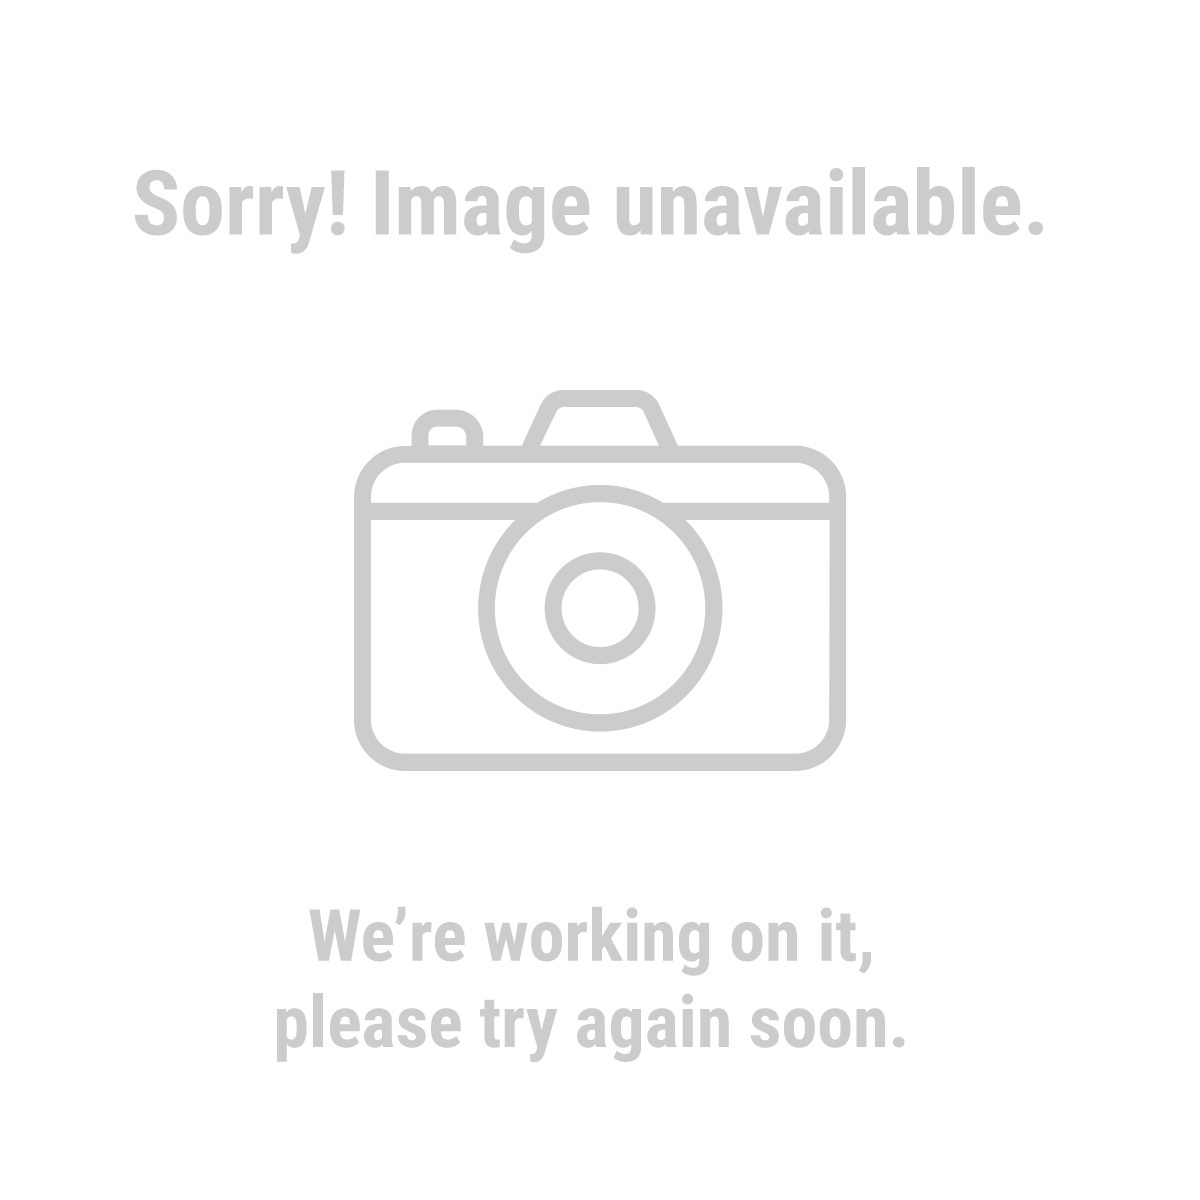 Warrior 61500 4-1/2 in. 36 Grit Flap Disc